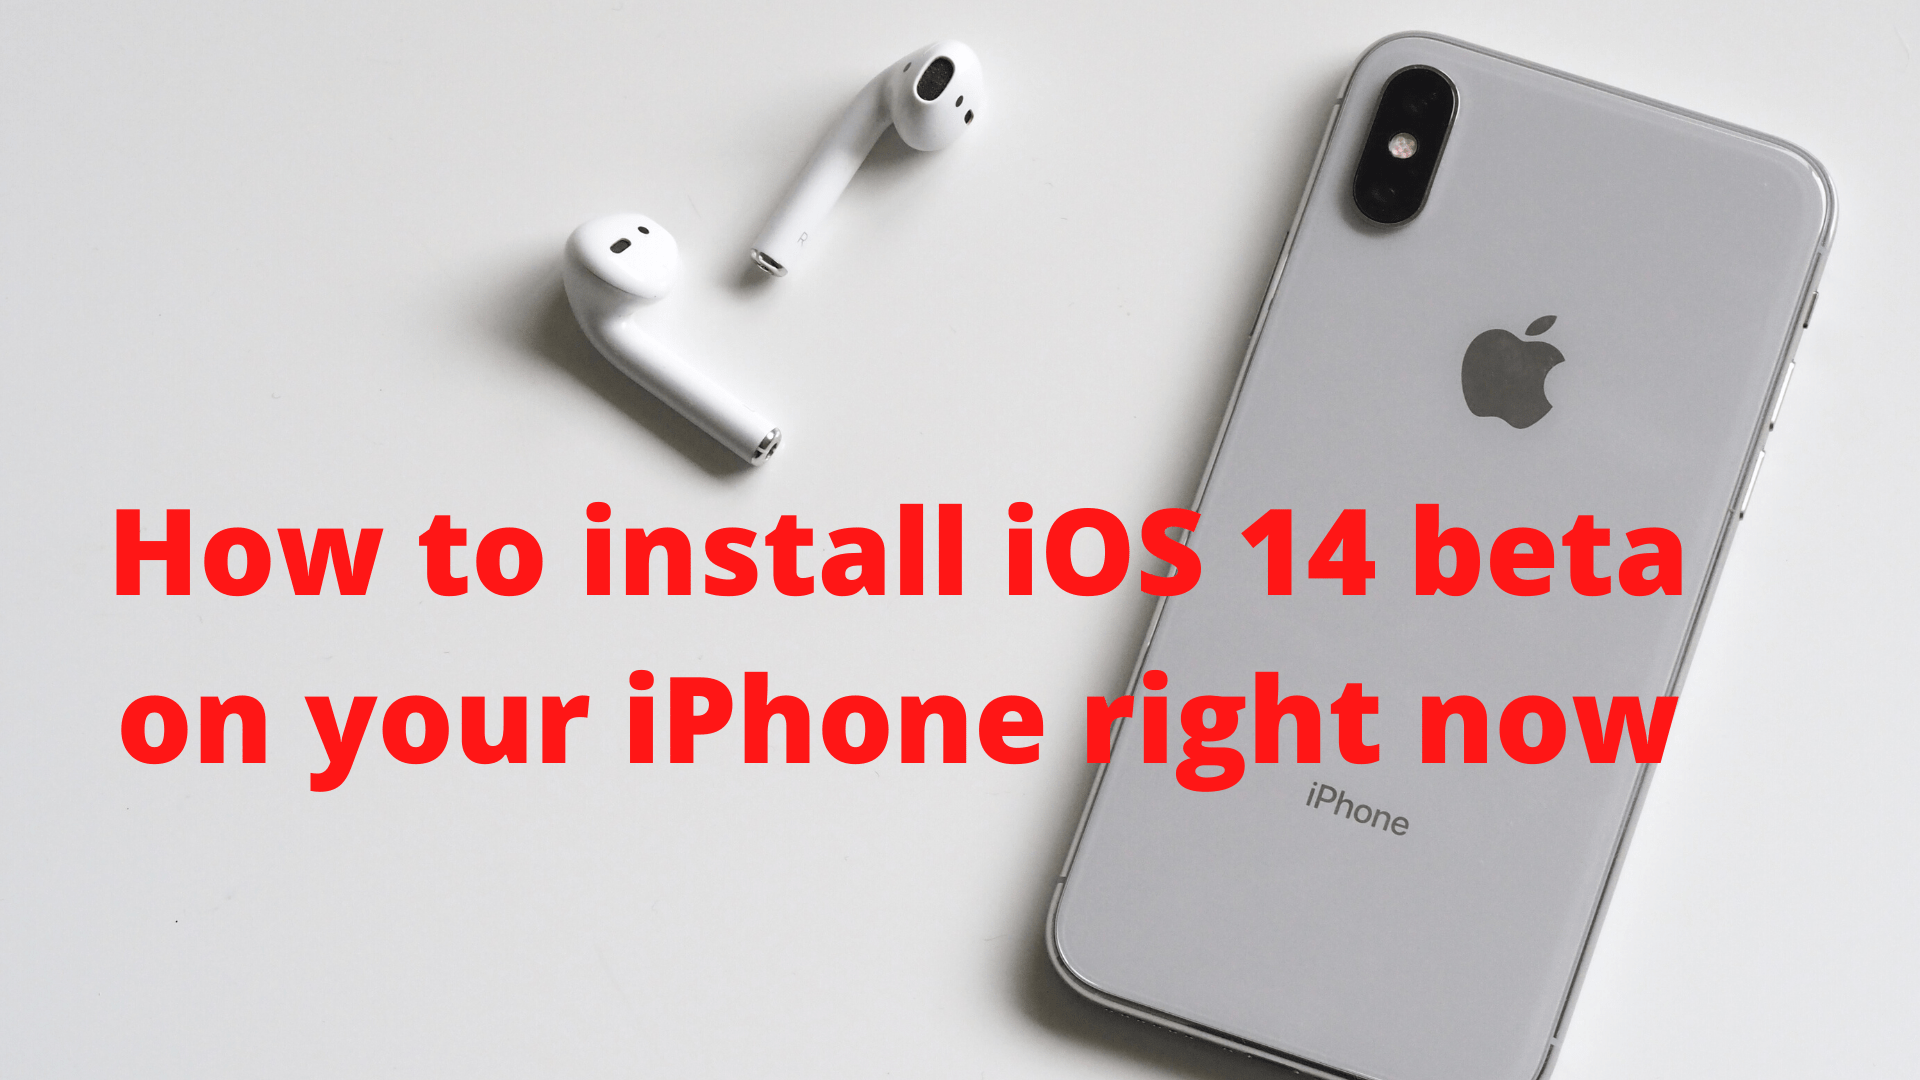 How to install iOS 14 beta on your iPhone right now